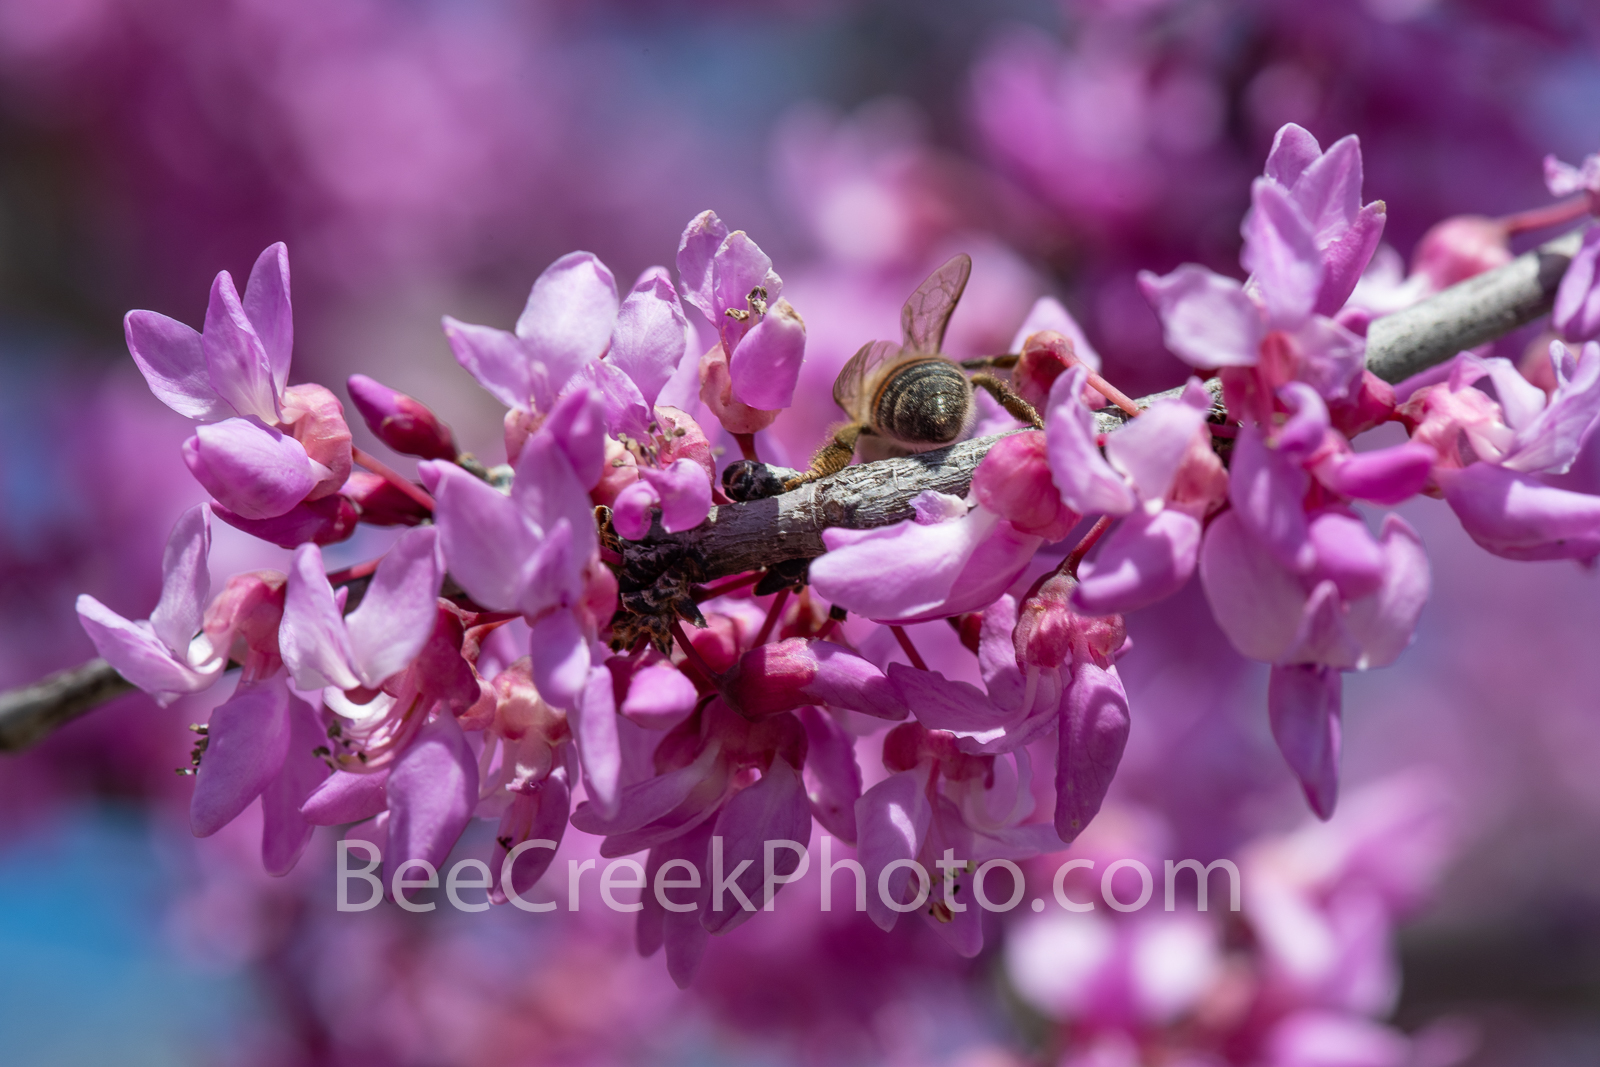 Texas Redbud Close Up - We capture this wonderful redbud macro showing these colorful clusters of pink flowers of this tree....